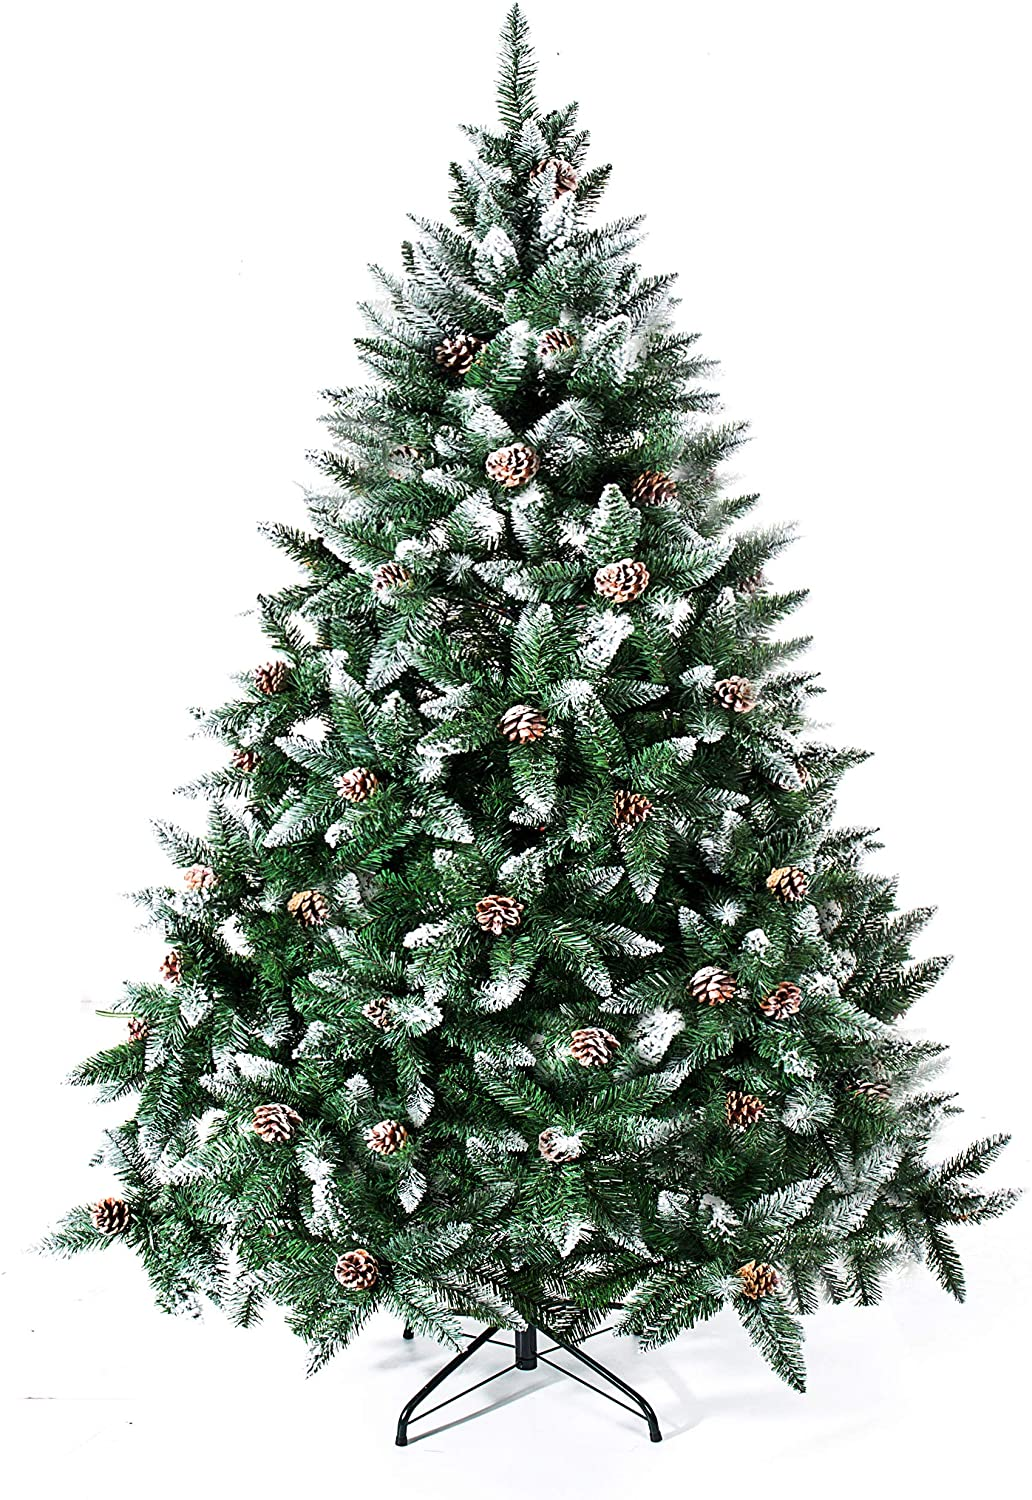 Senjie Artificial Christmas Snow Tree